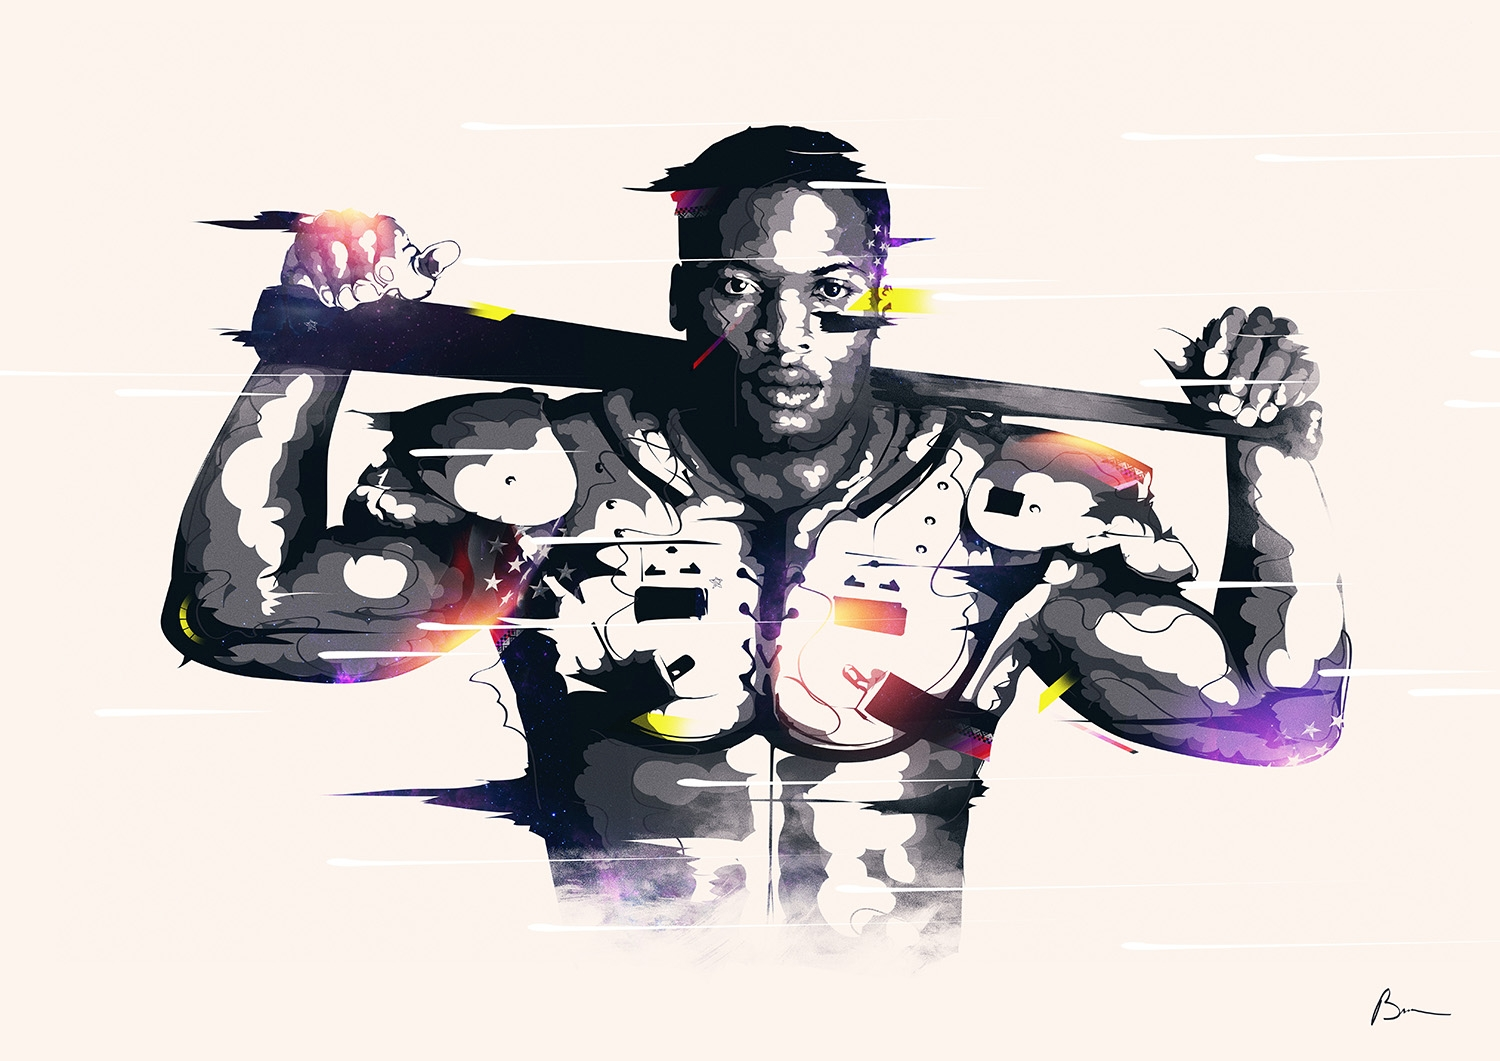 heroes of sport design celebrated by daily portrait